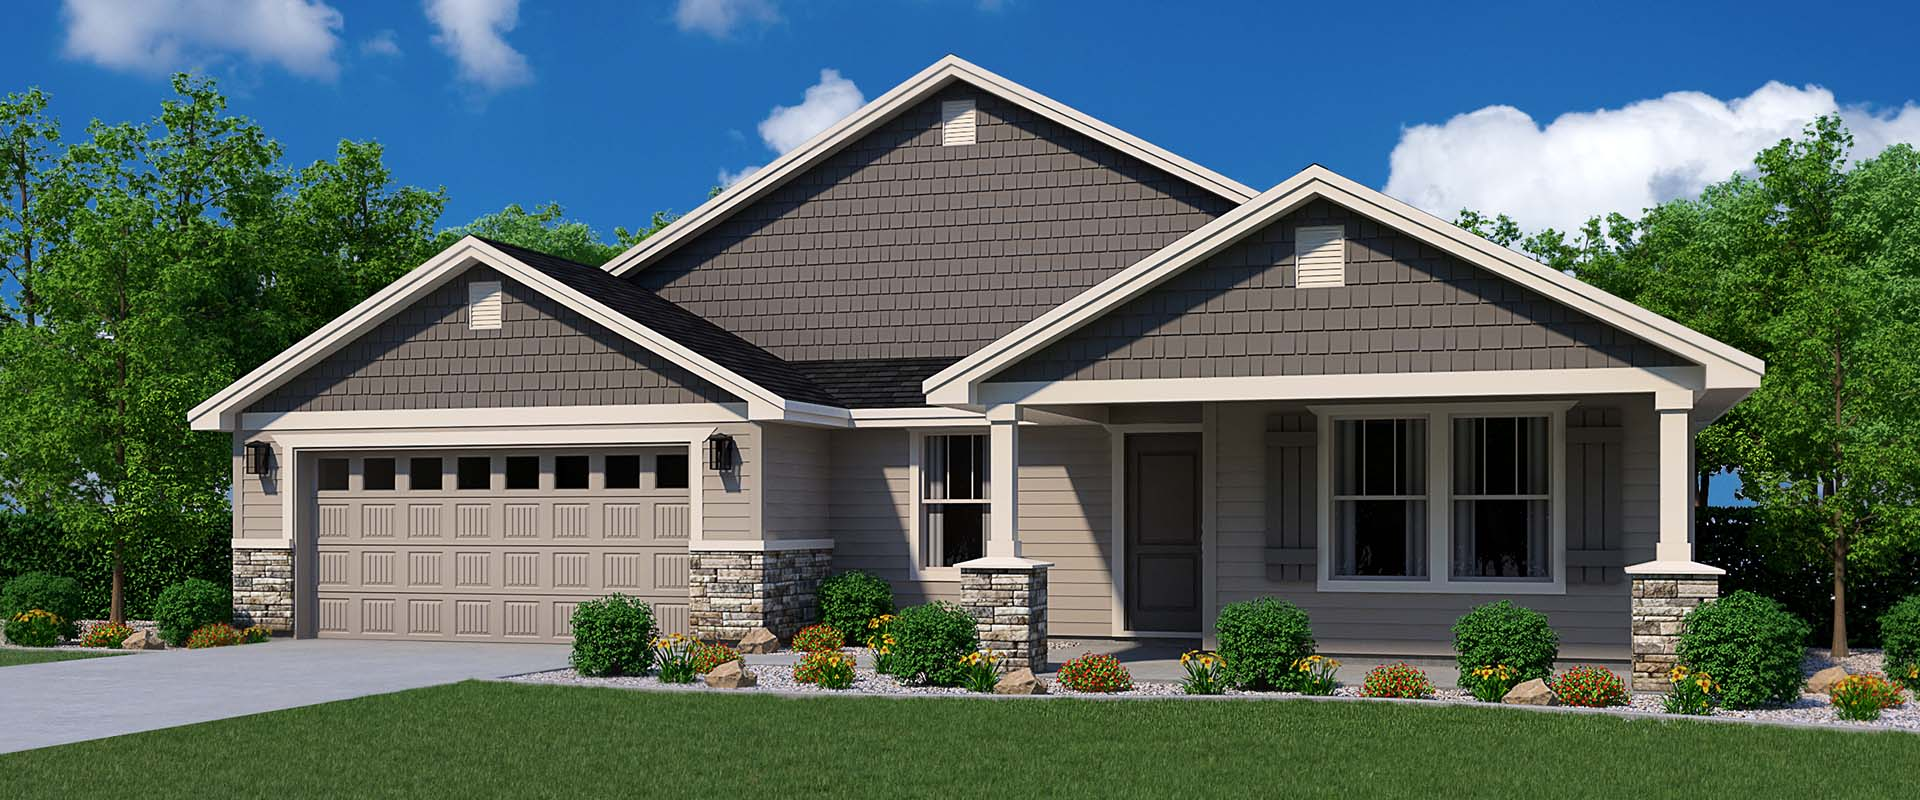 new-homes-boise-idaho-hubble-homes_0038_Amethyst Craftsman pack 54.jpg